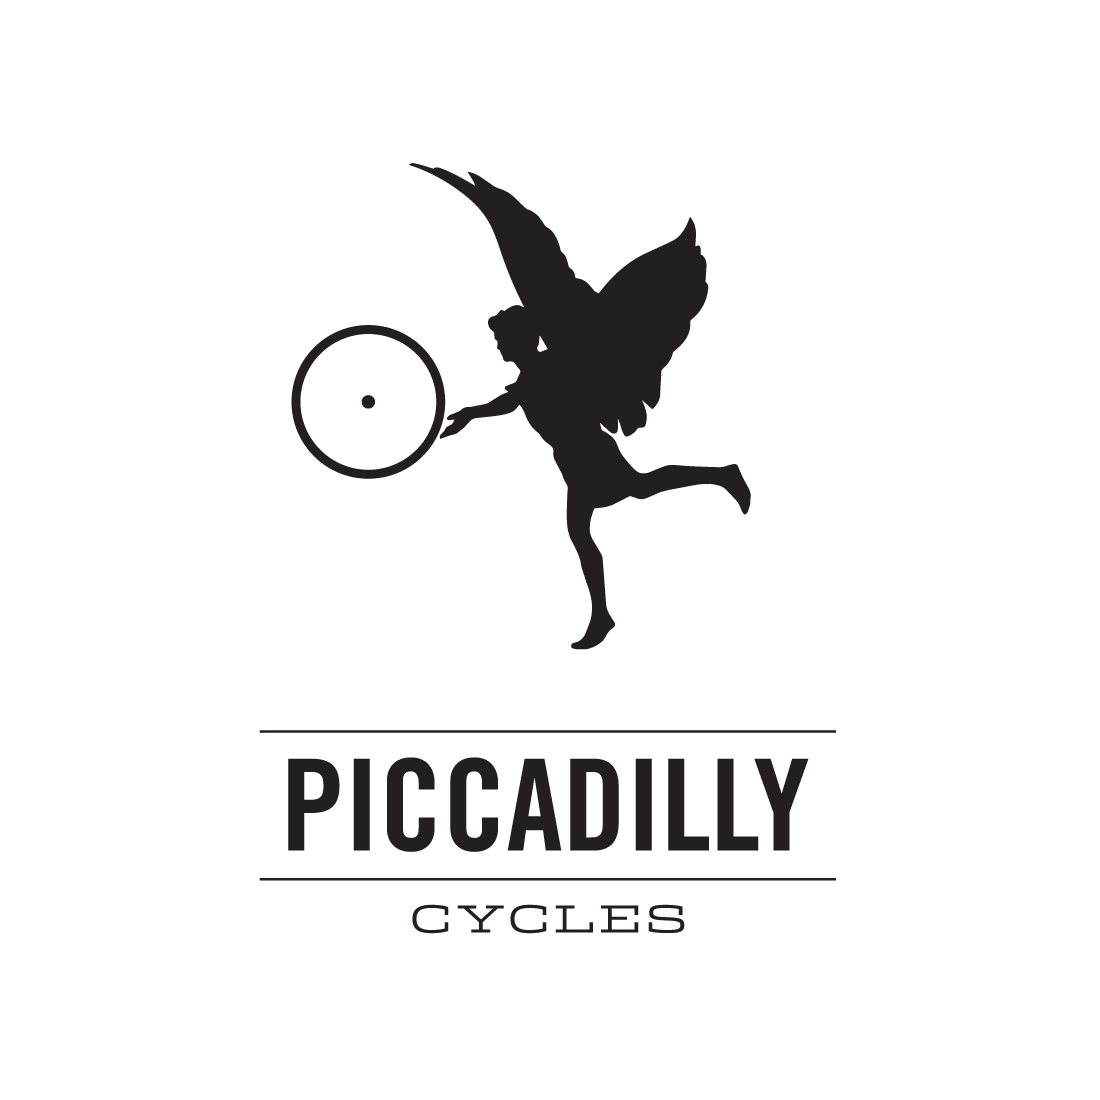 Piccadilly Cycles logo by Mark Mularz, Flip Design